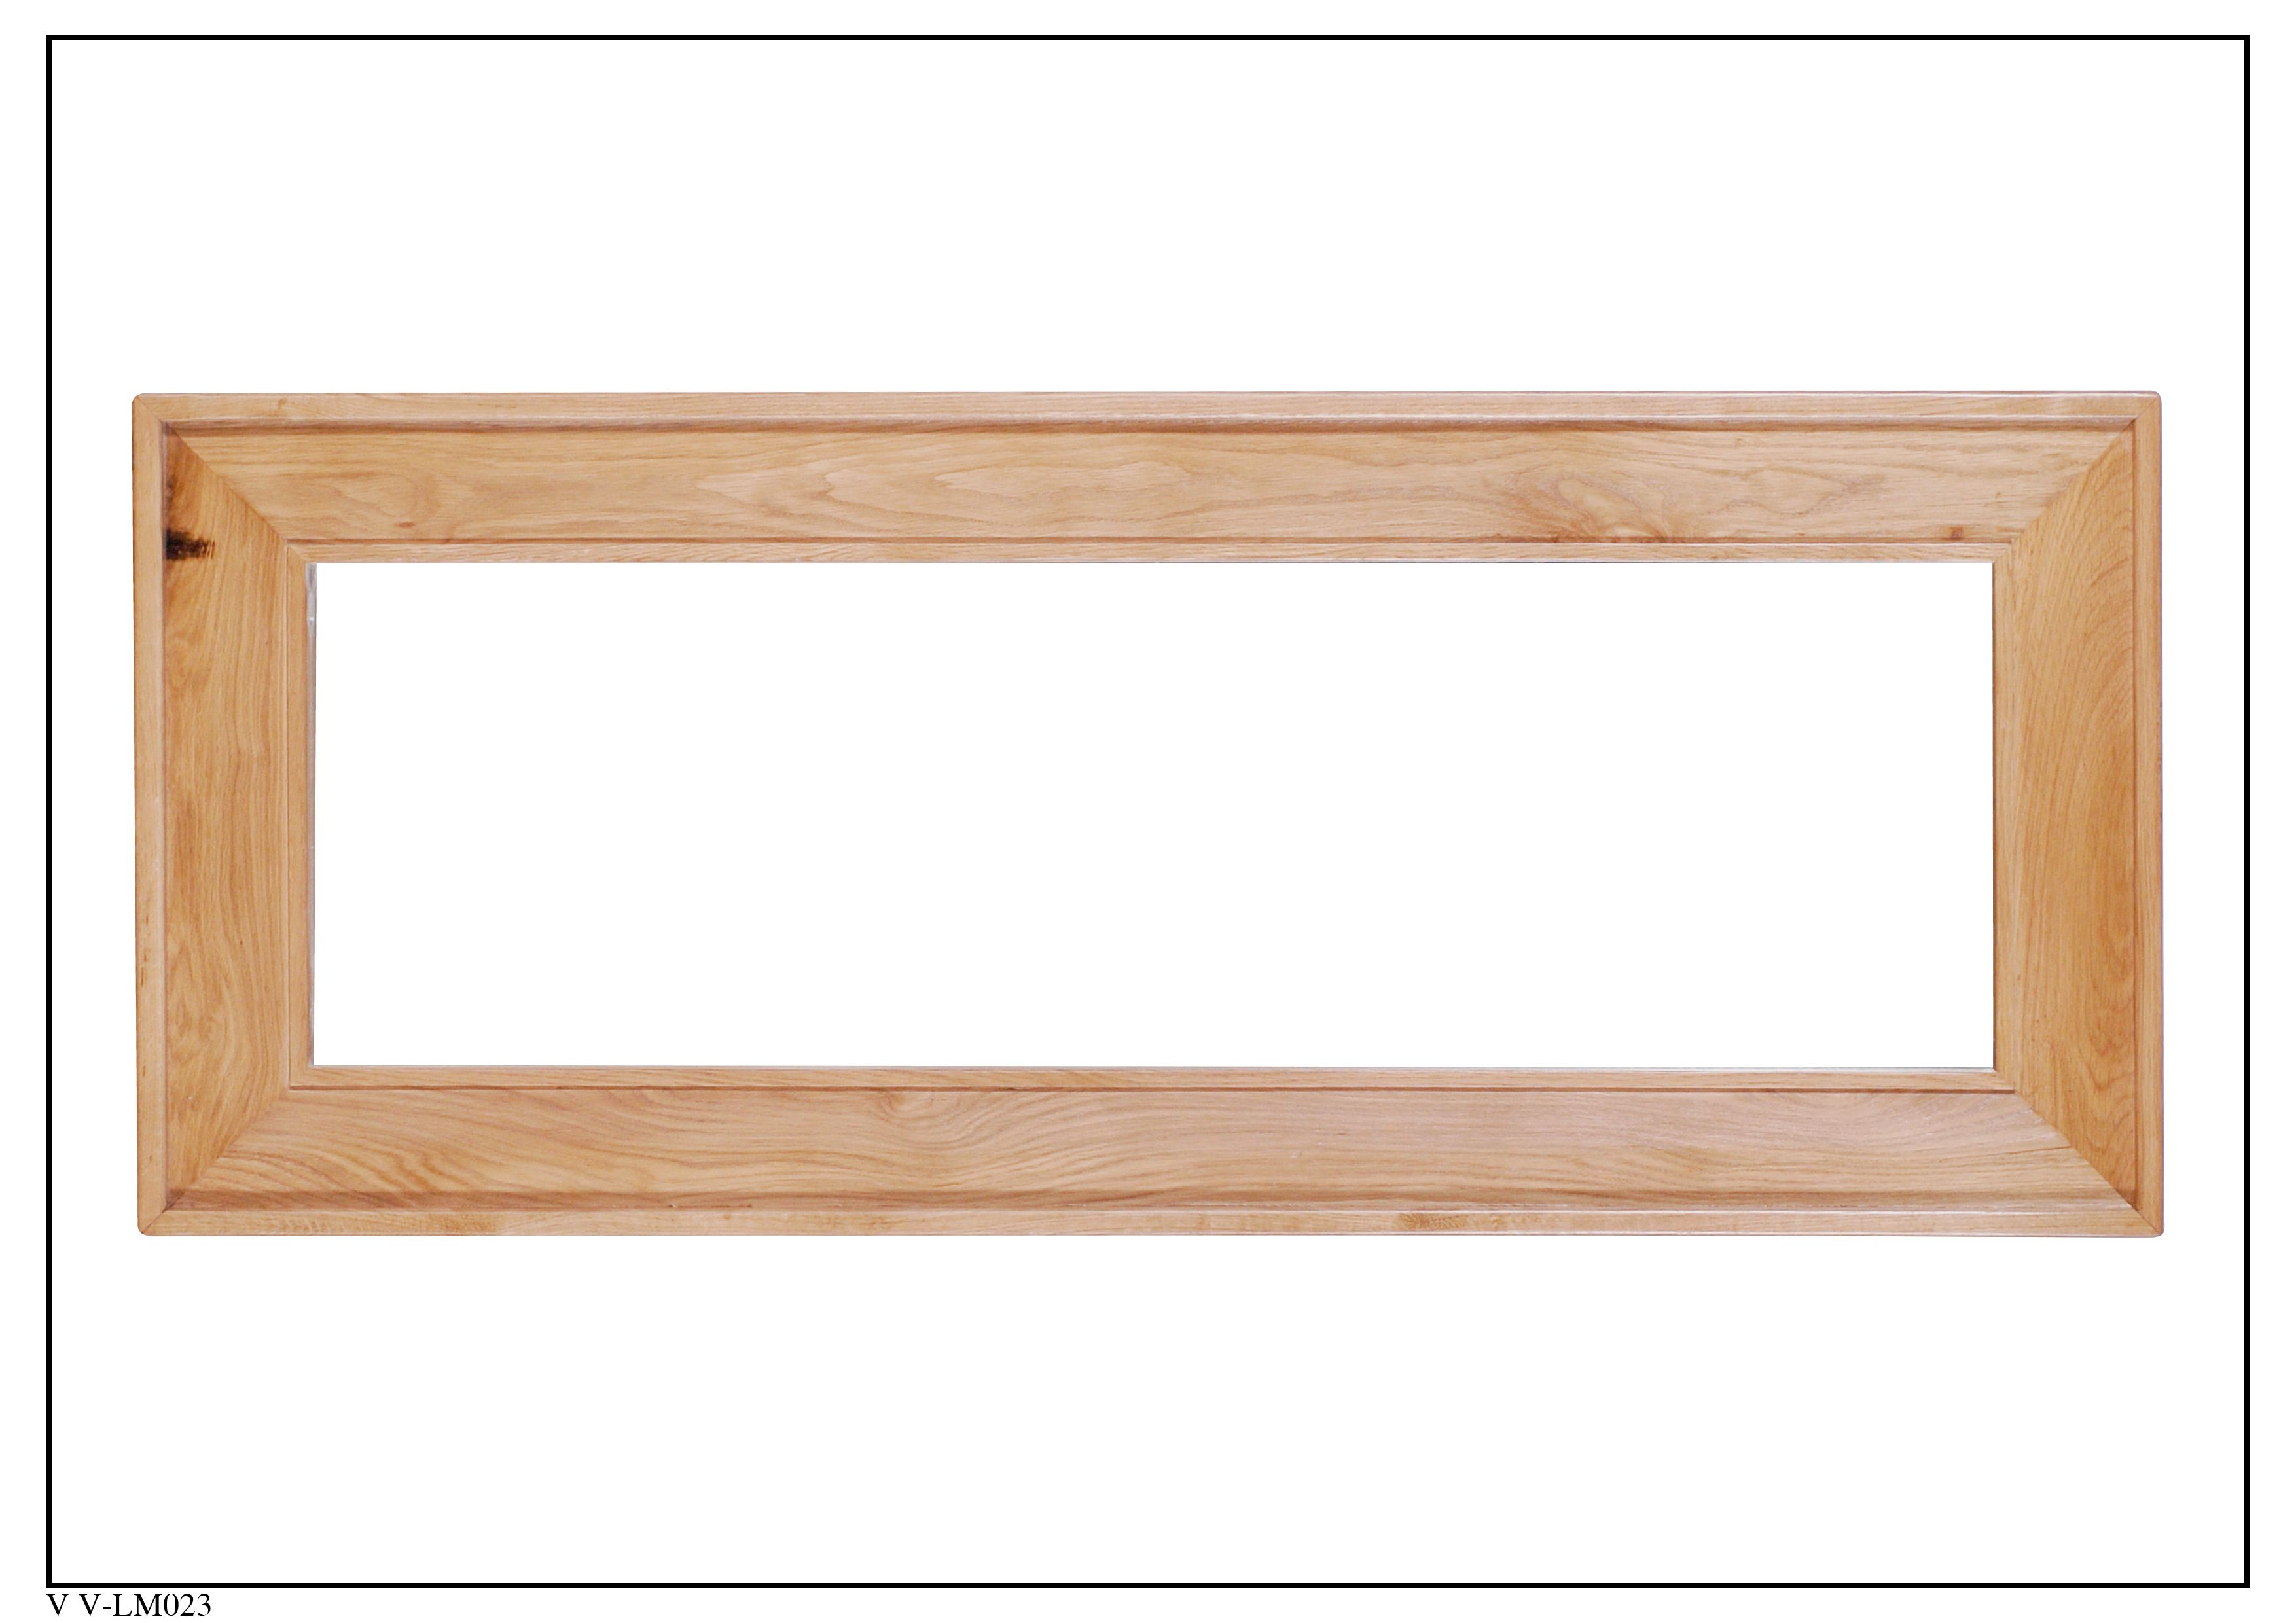 ELEPHANT  FURNITURE - Vancouver Value - Long Mirror (1700mm x 700mm x 40mm Thick) - V V-LM023